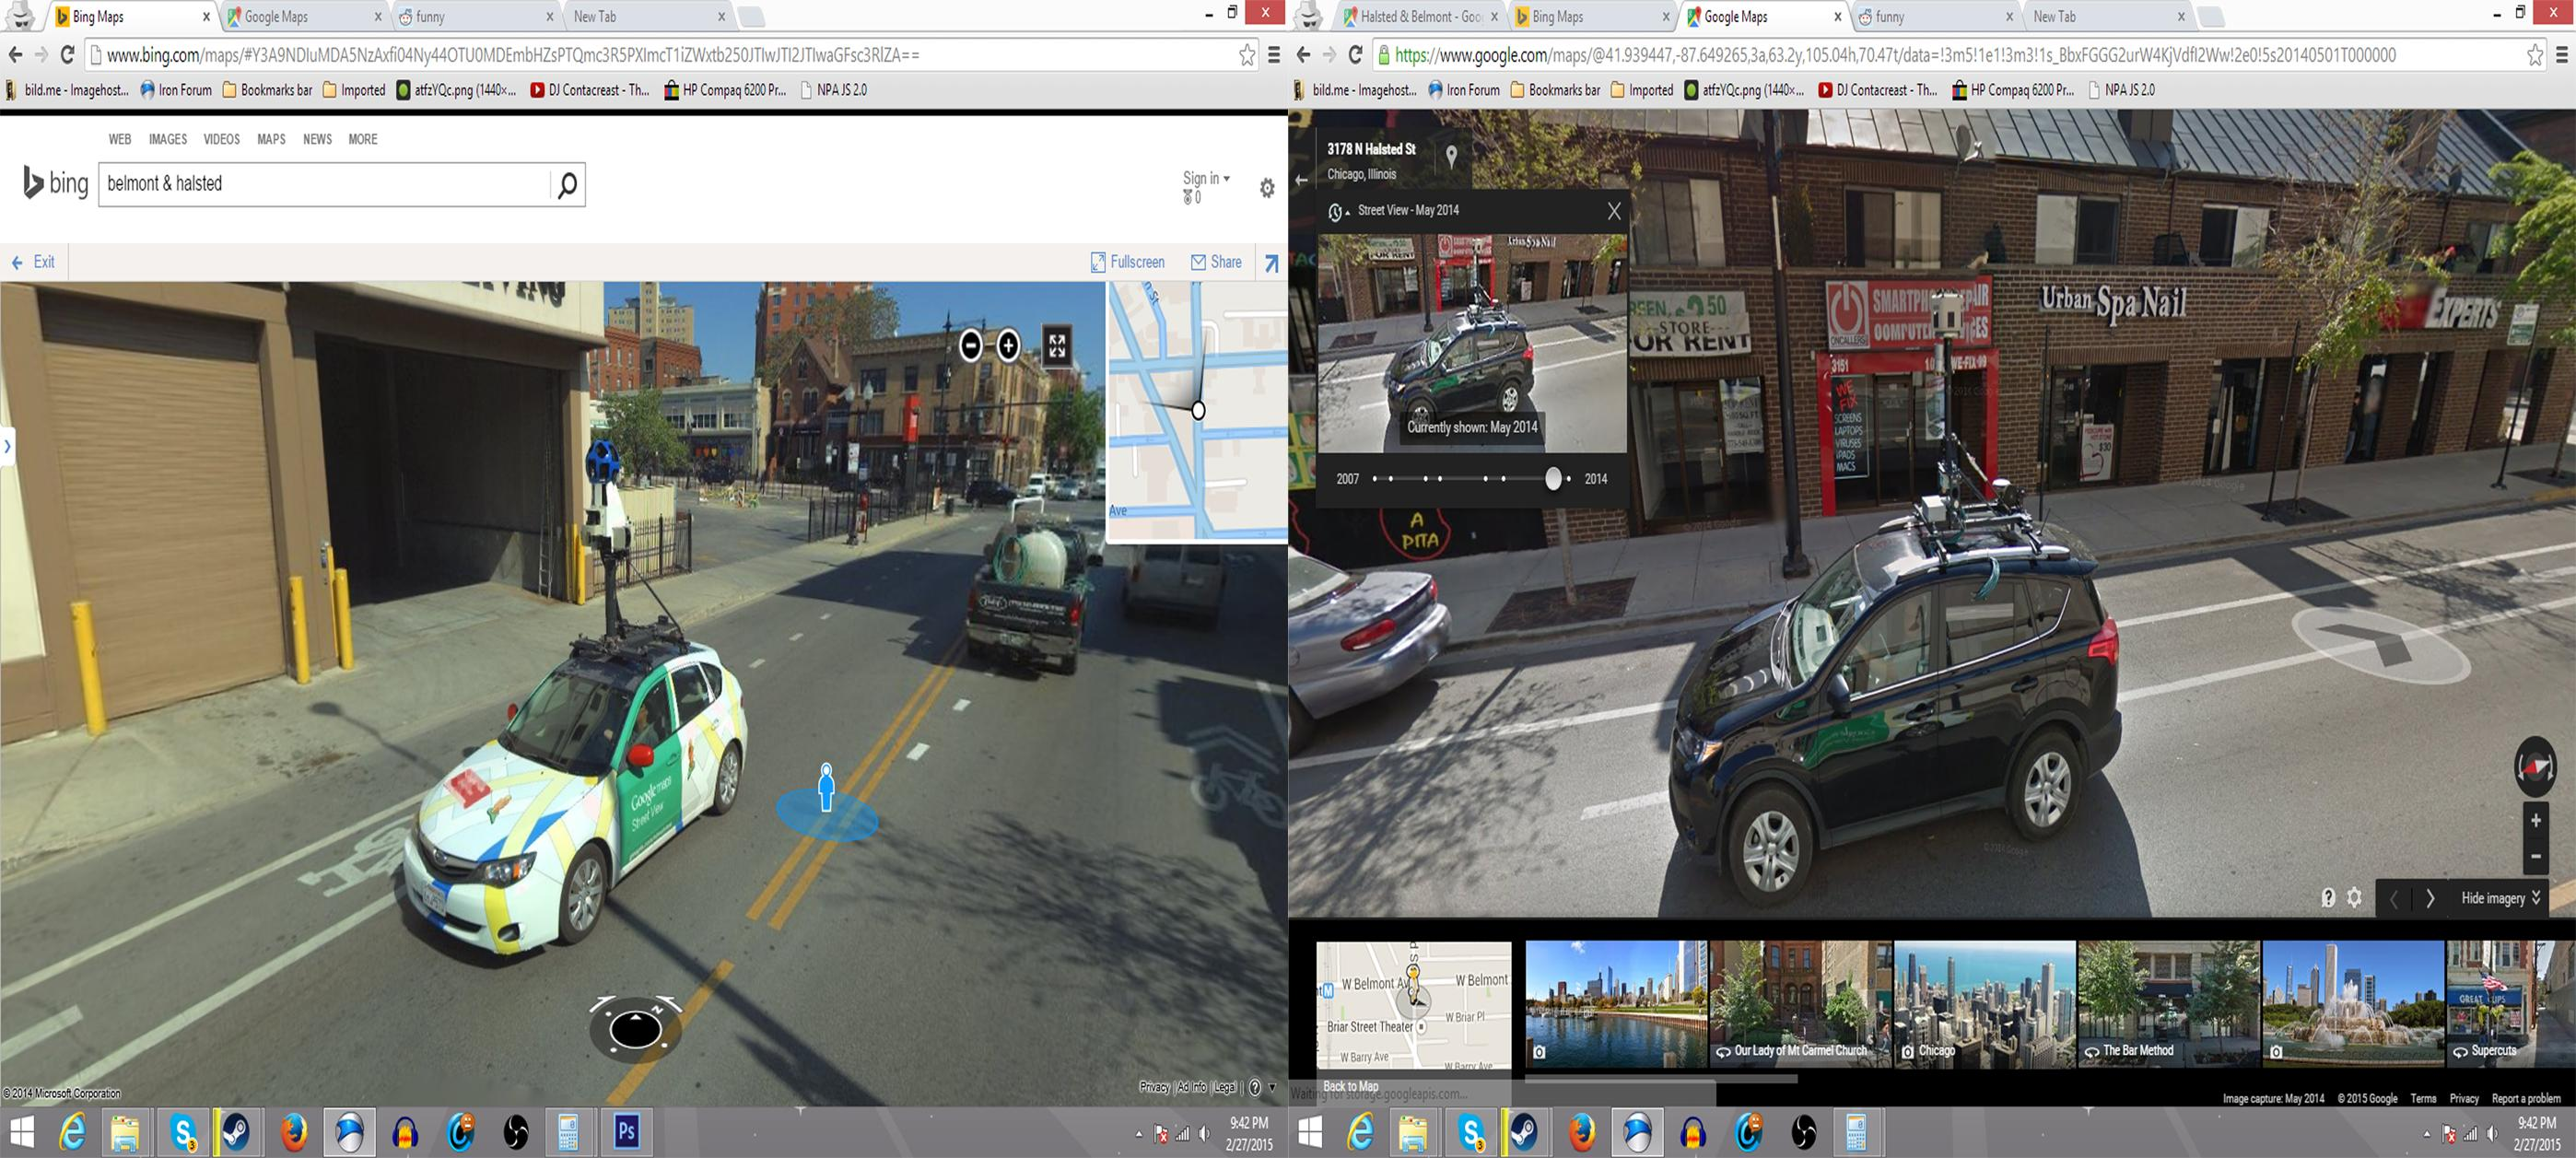 google street view and bing maps streetside view collide sorta